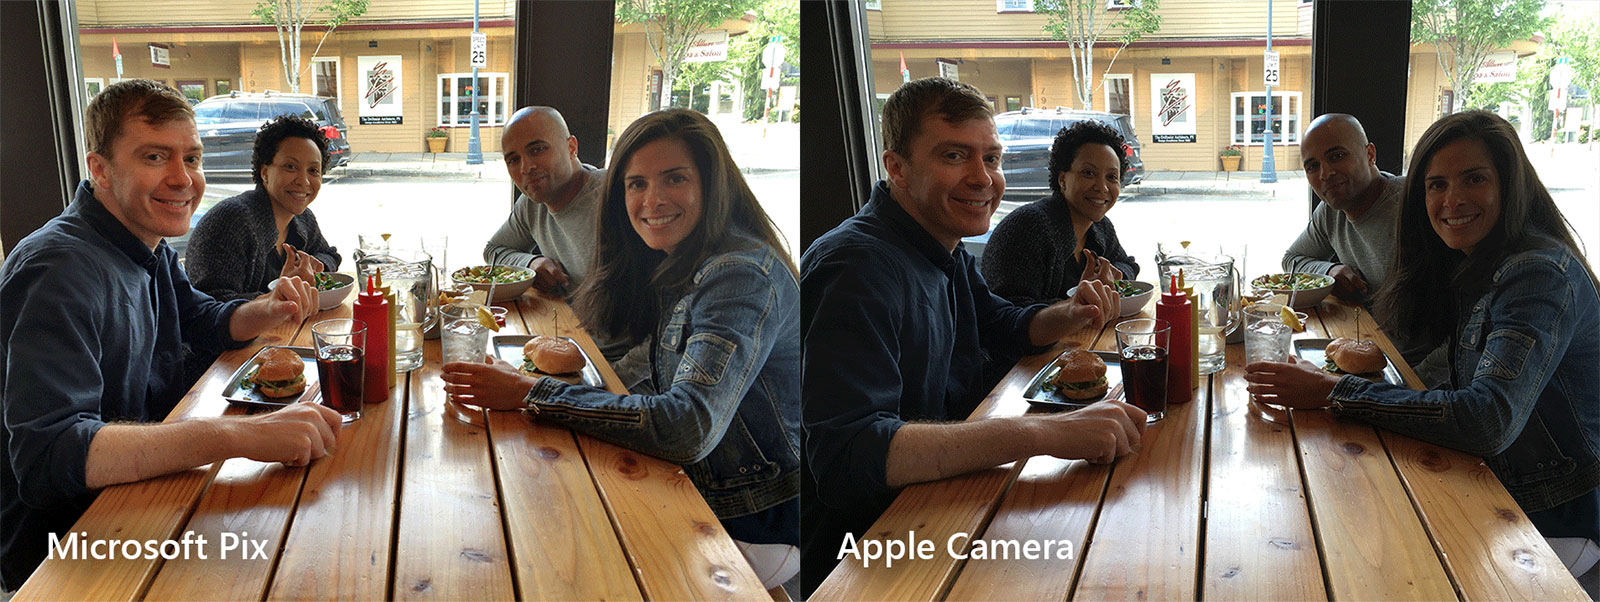 microsoft-pix-vs-iphone-camera-app